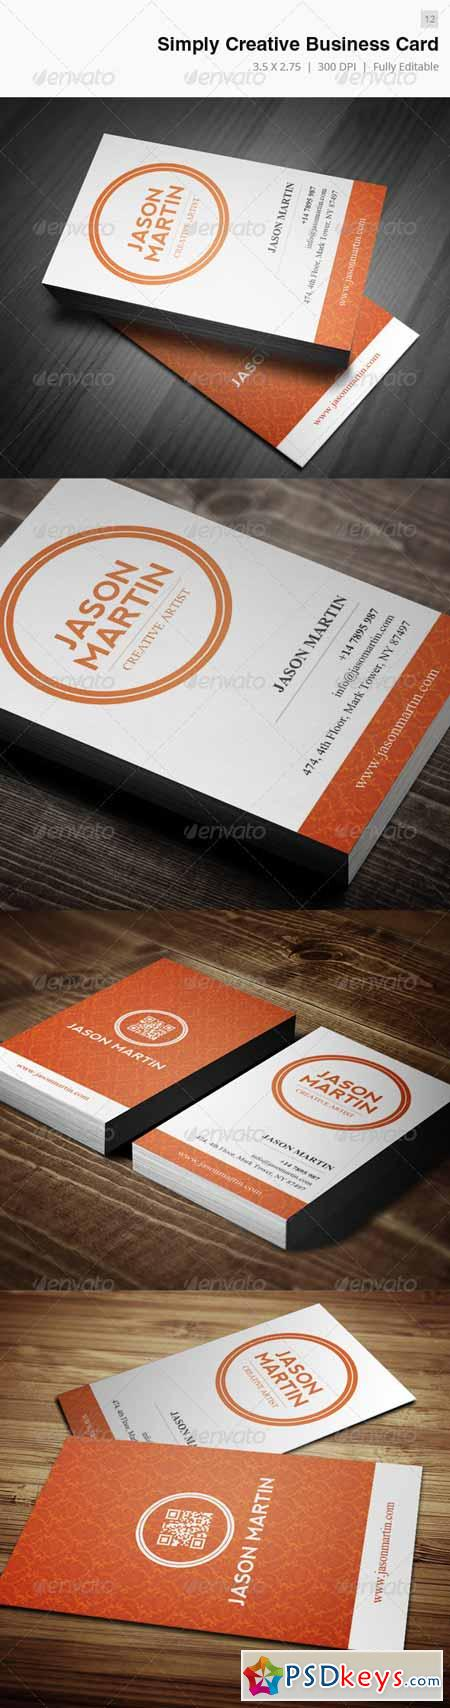 Simply Creative Business Card - 12 3907355